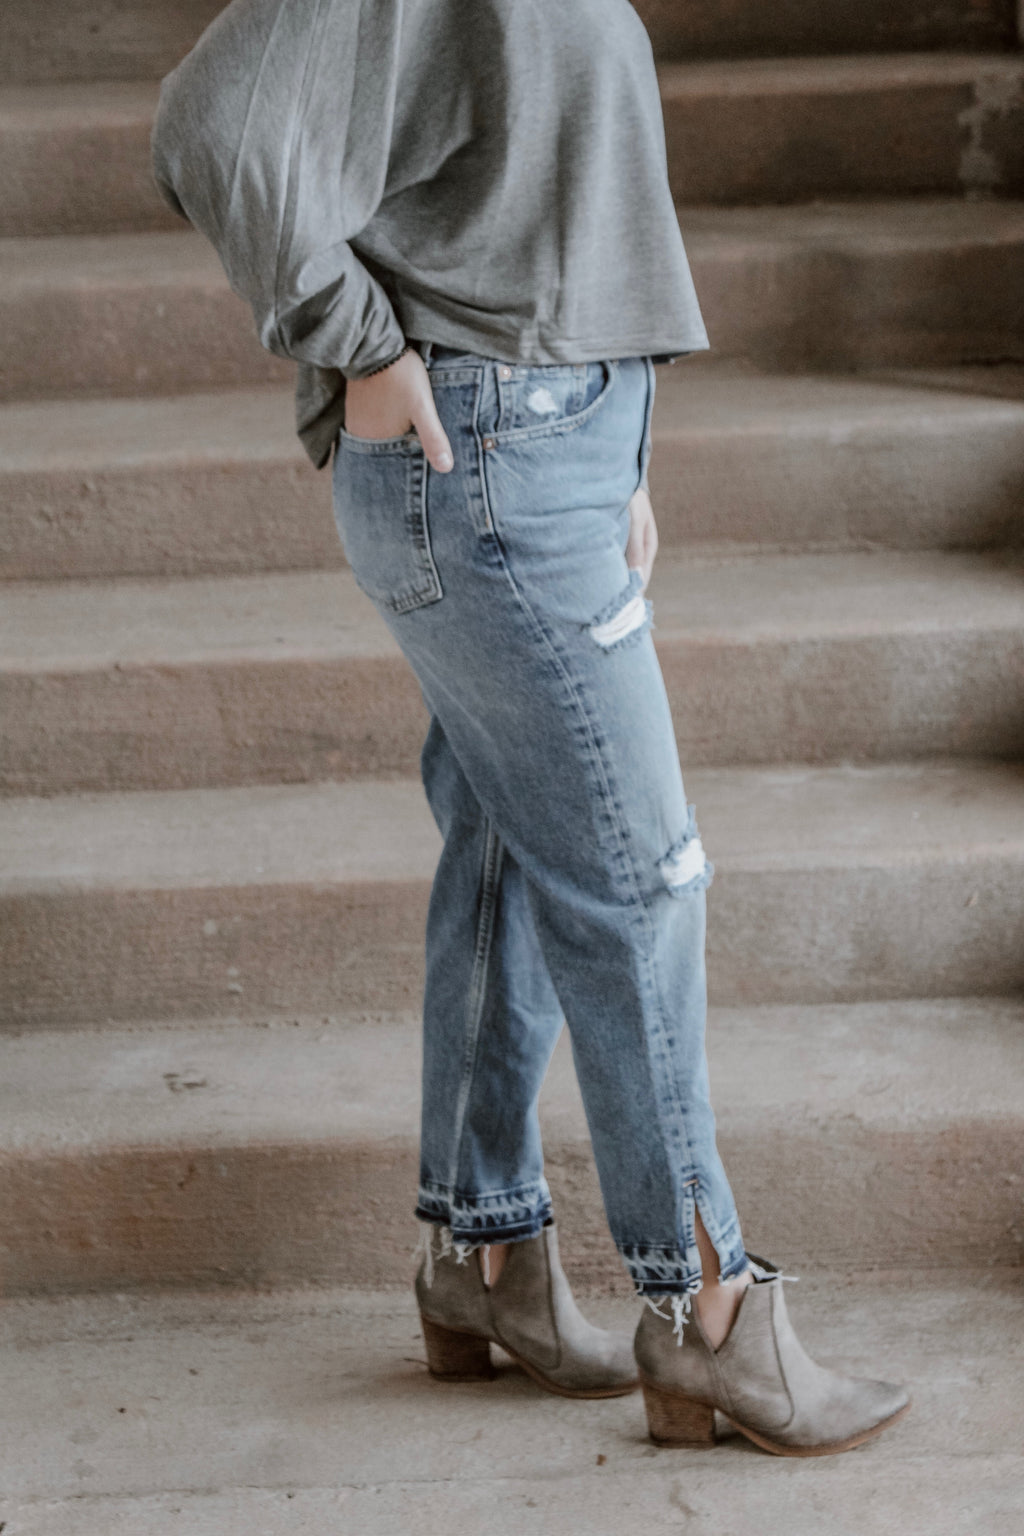 FREE PEOPLE BOYFRIEND JEANS - YOSEMITE BLUE